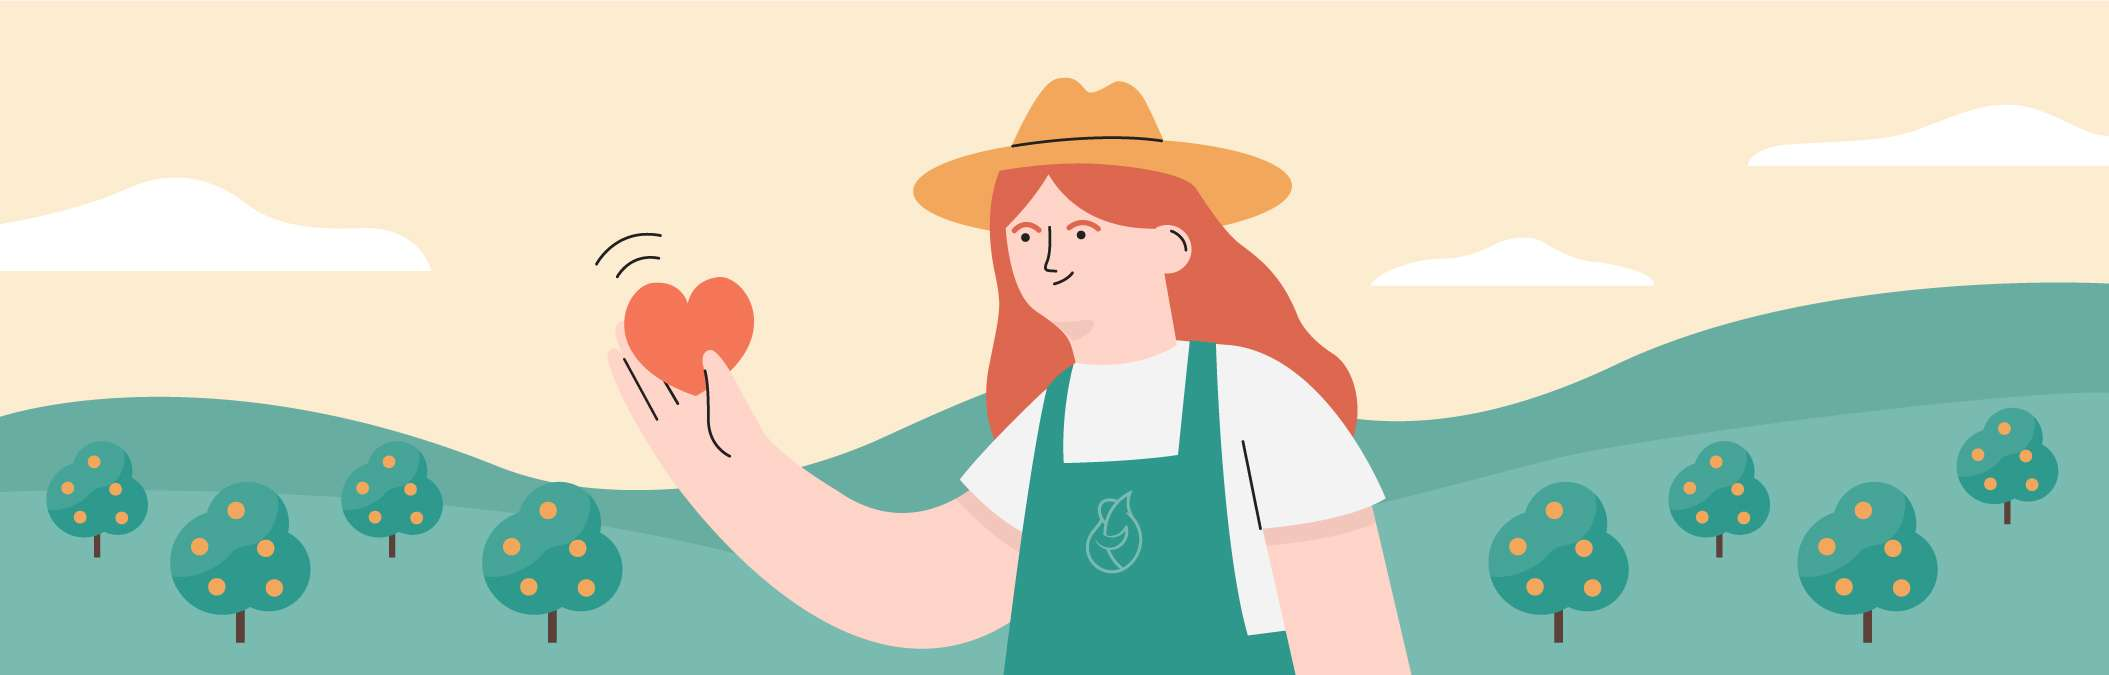 Illustration of a farmer with a heart in her hand